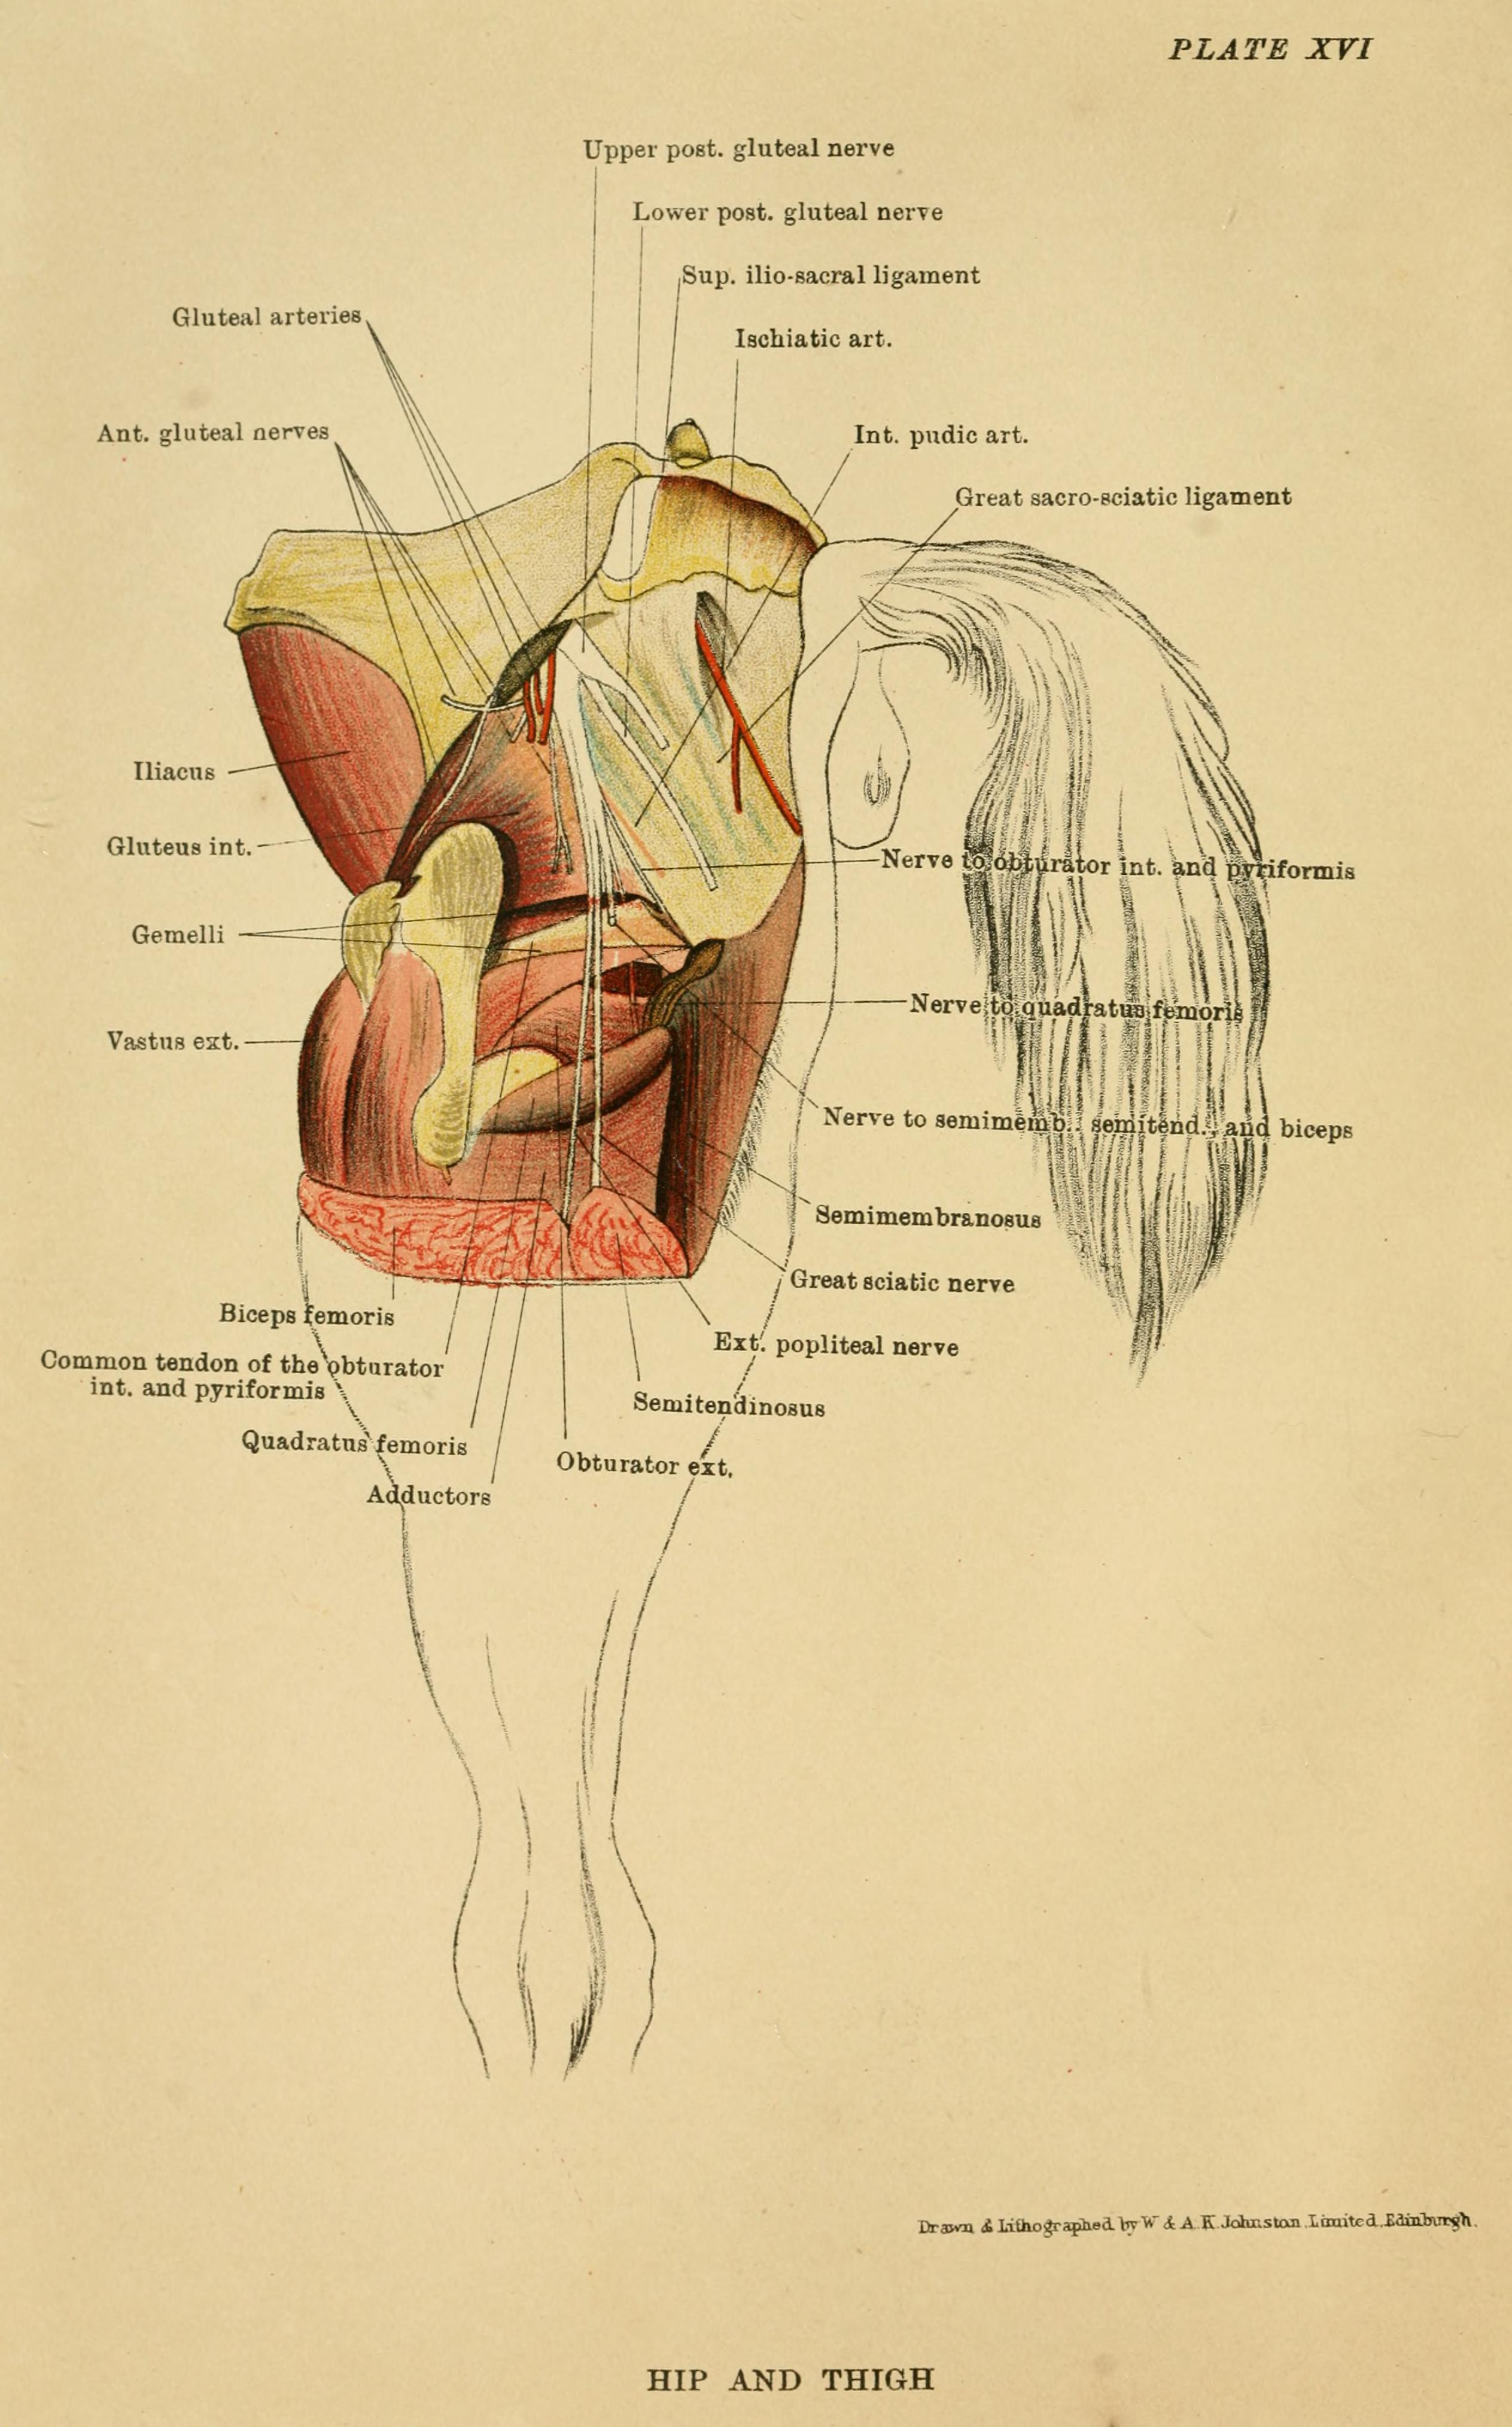 Filethe Anatomy Of The Horse A Dissection Guide 1922